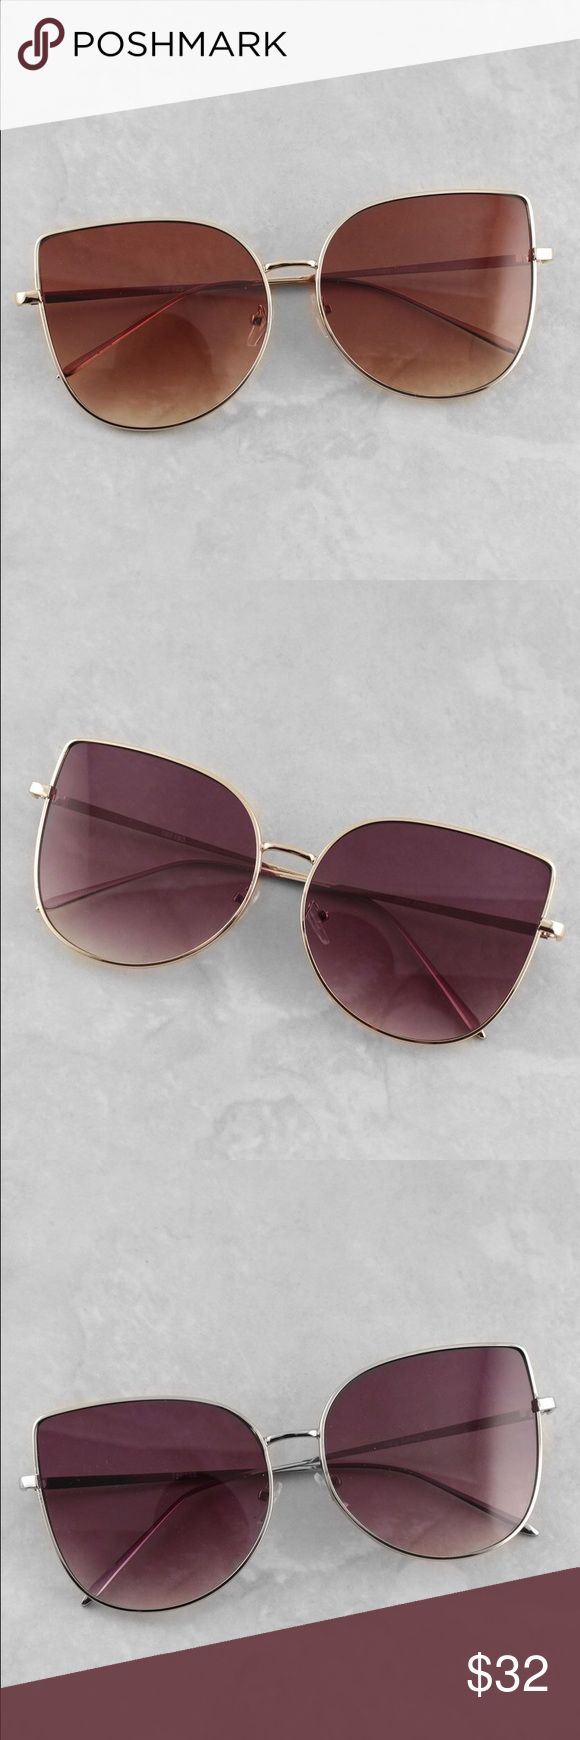 Winged aviators Price is for 1 pair.        UV protection with impact resistant lenses Contoured arms ❤️This pair will be marked down to $20 this weekend so lemme know if u want it❤️ Accessories Sunglasses